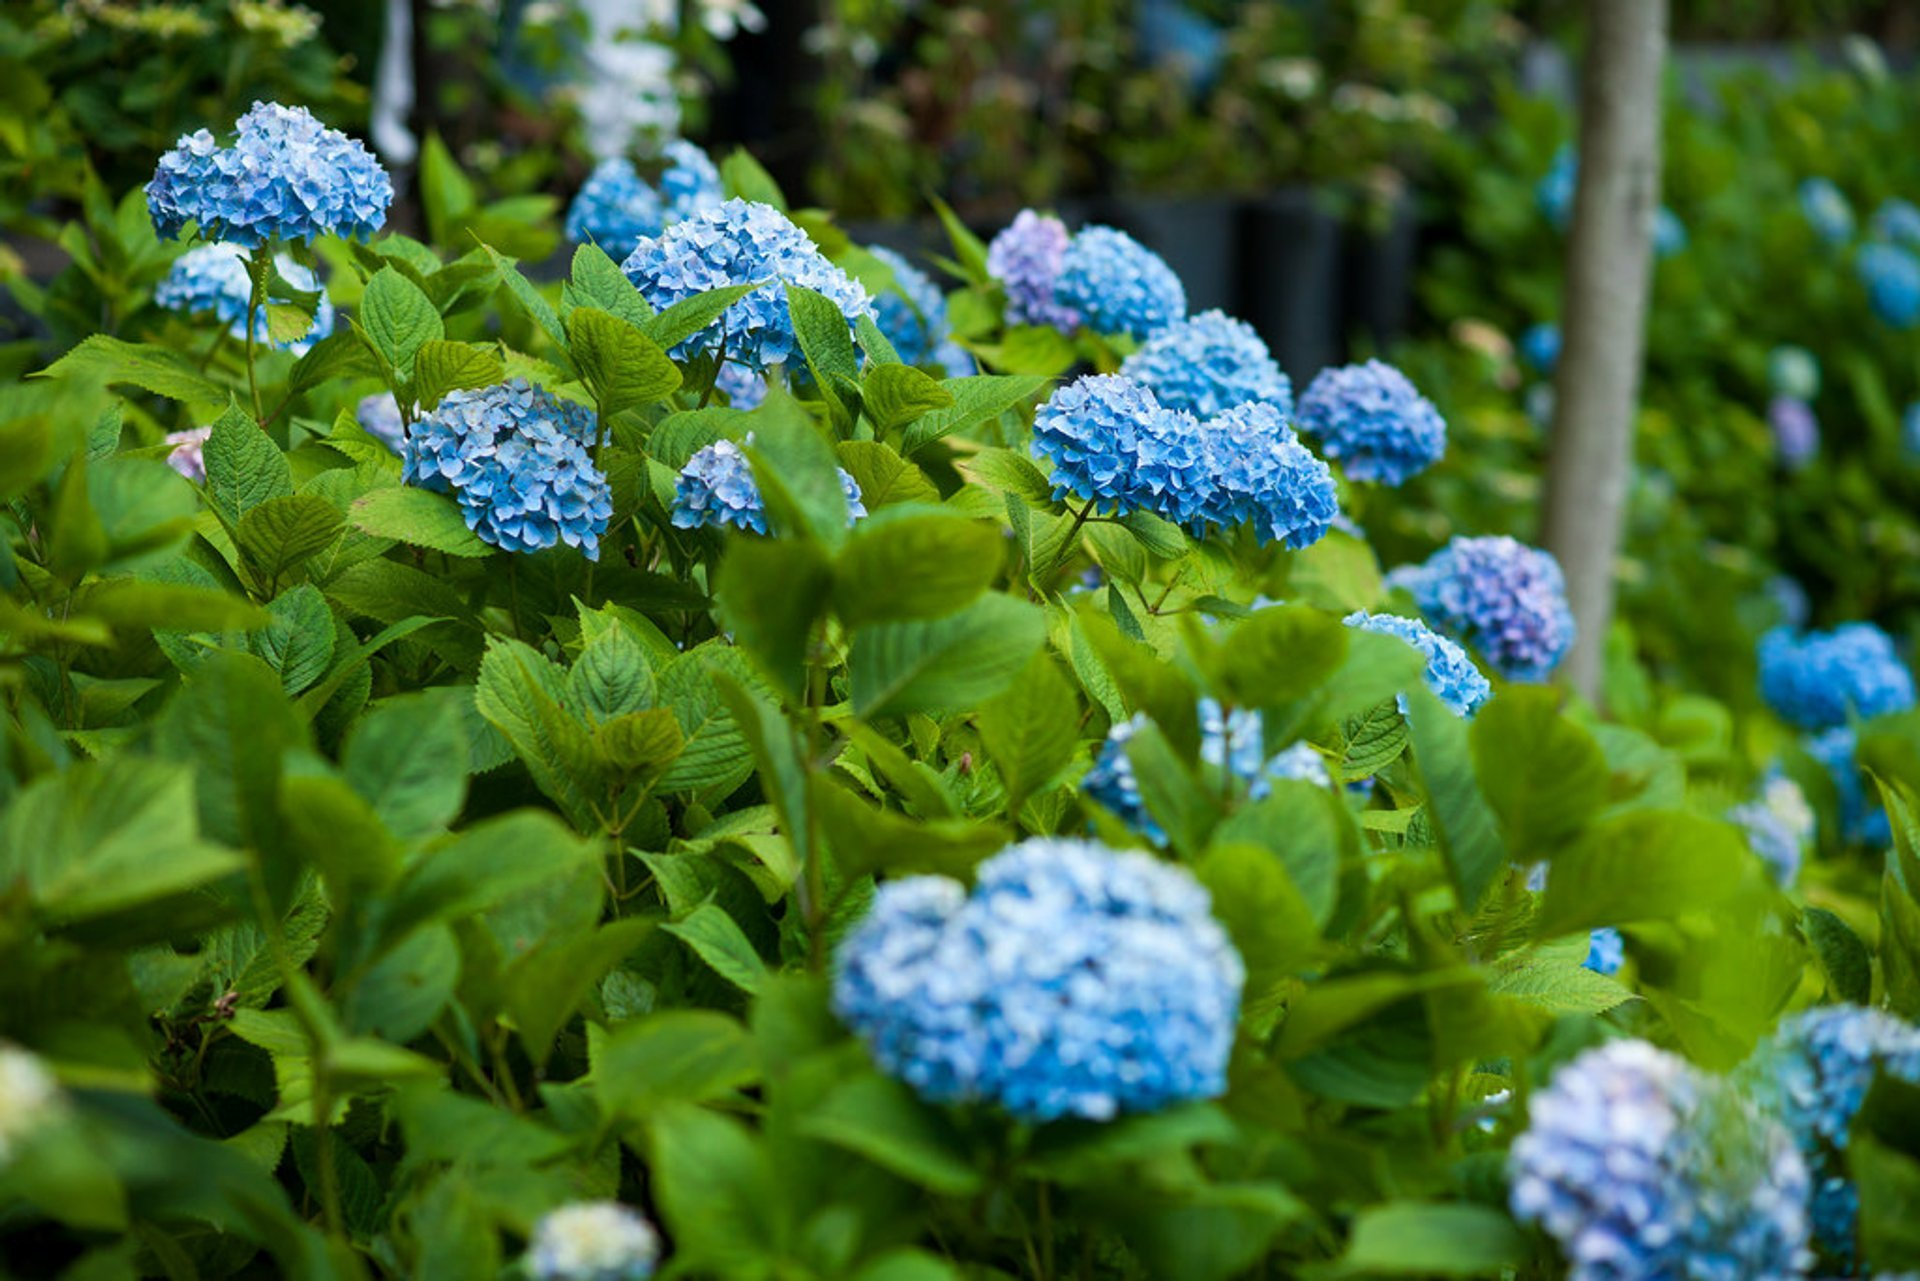 Hydrangea Blossoms in Japan 2020 - Best Time